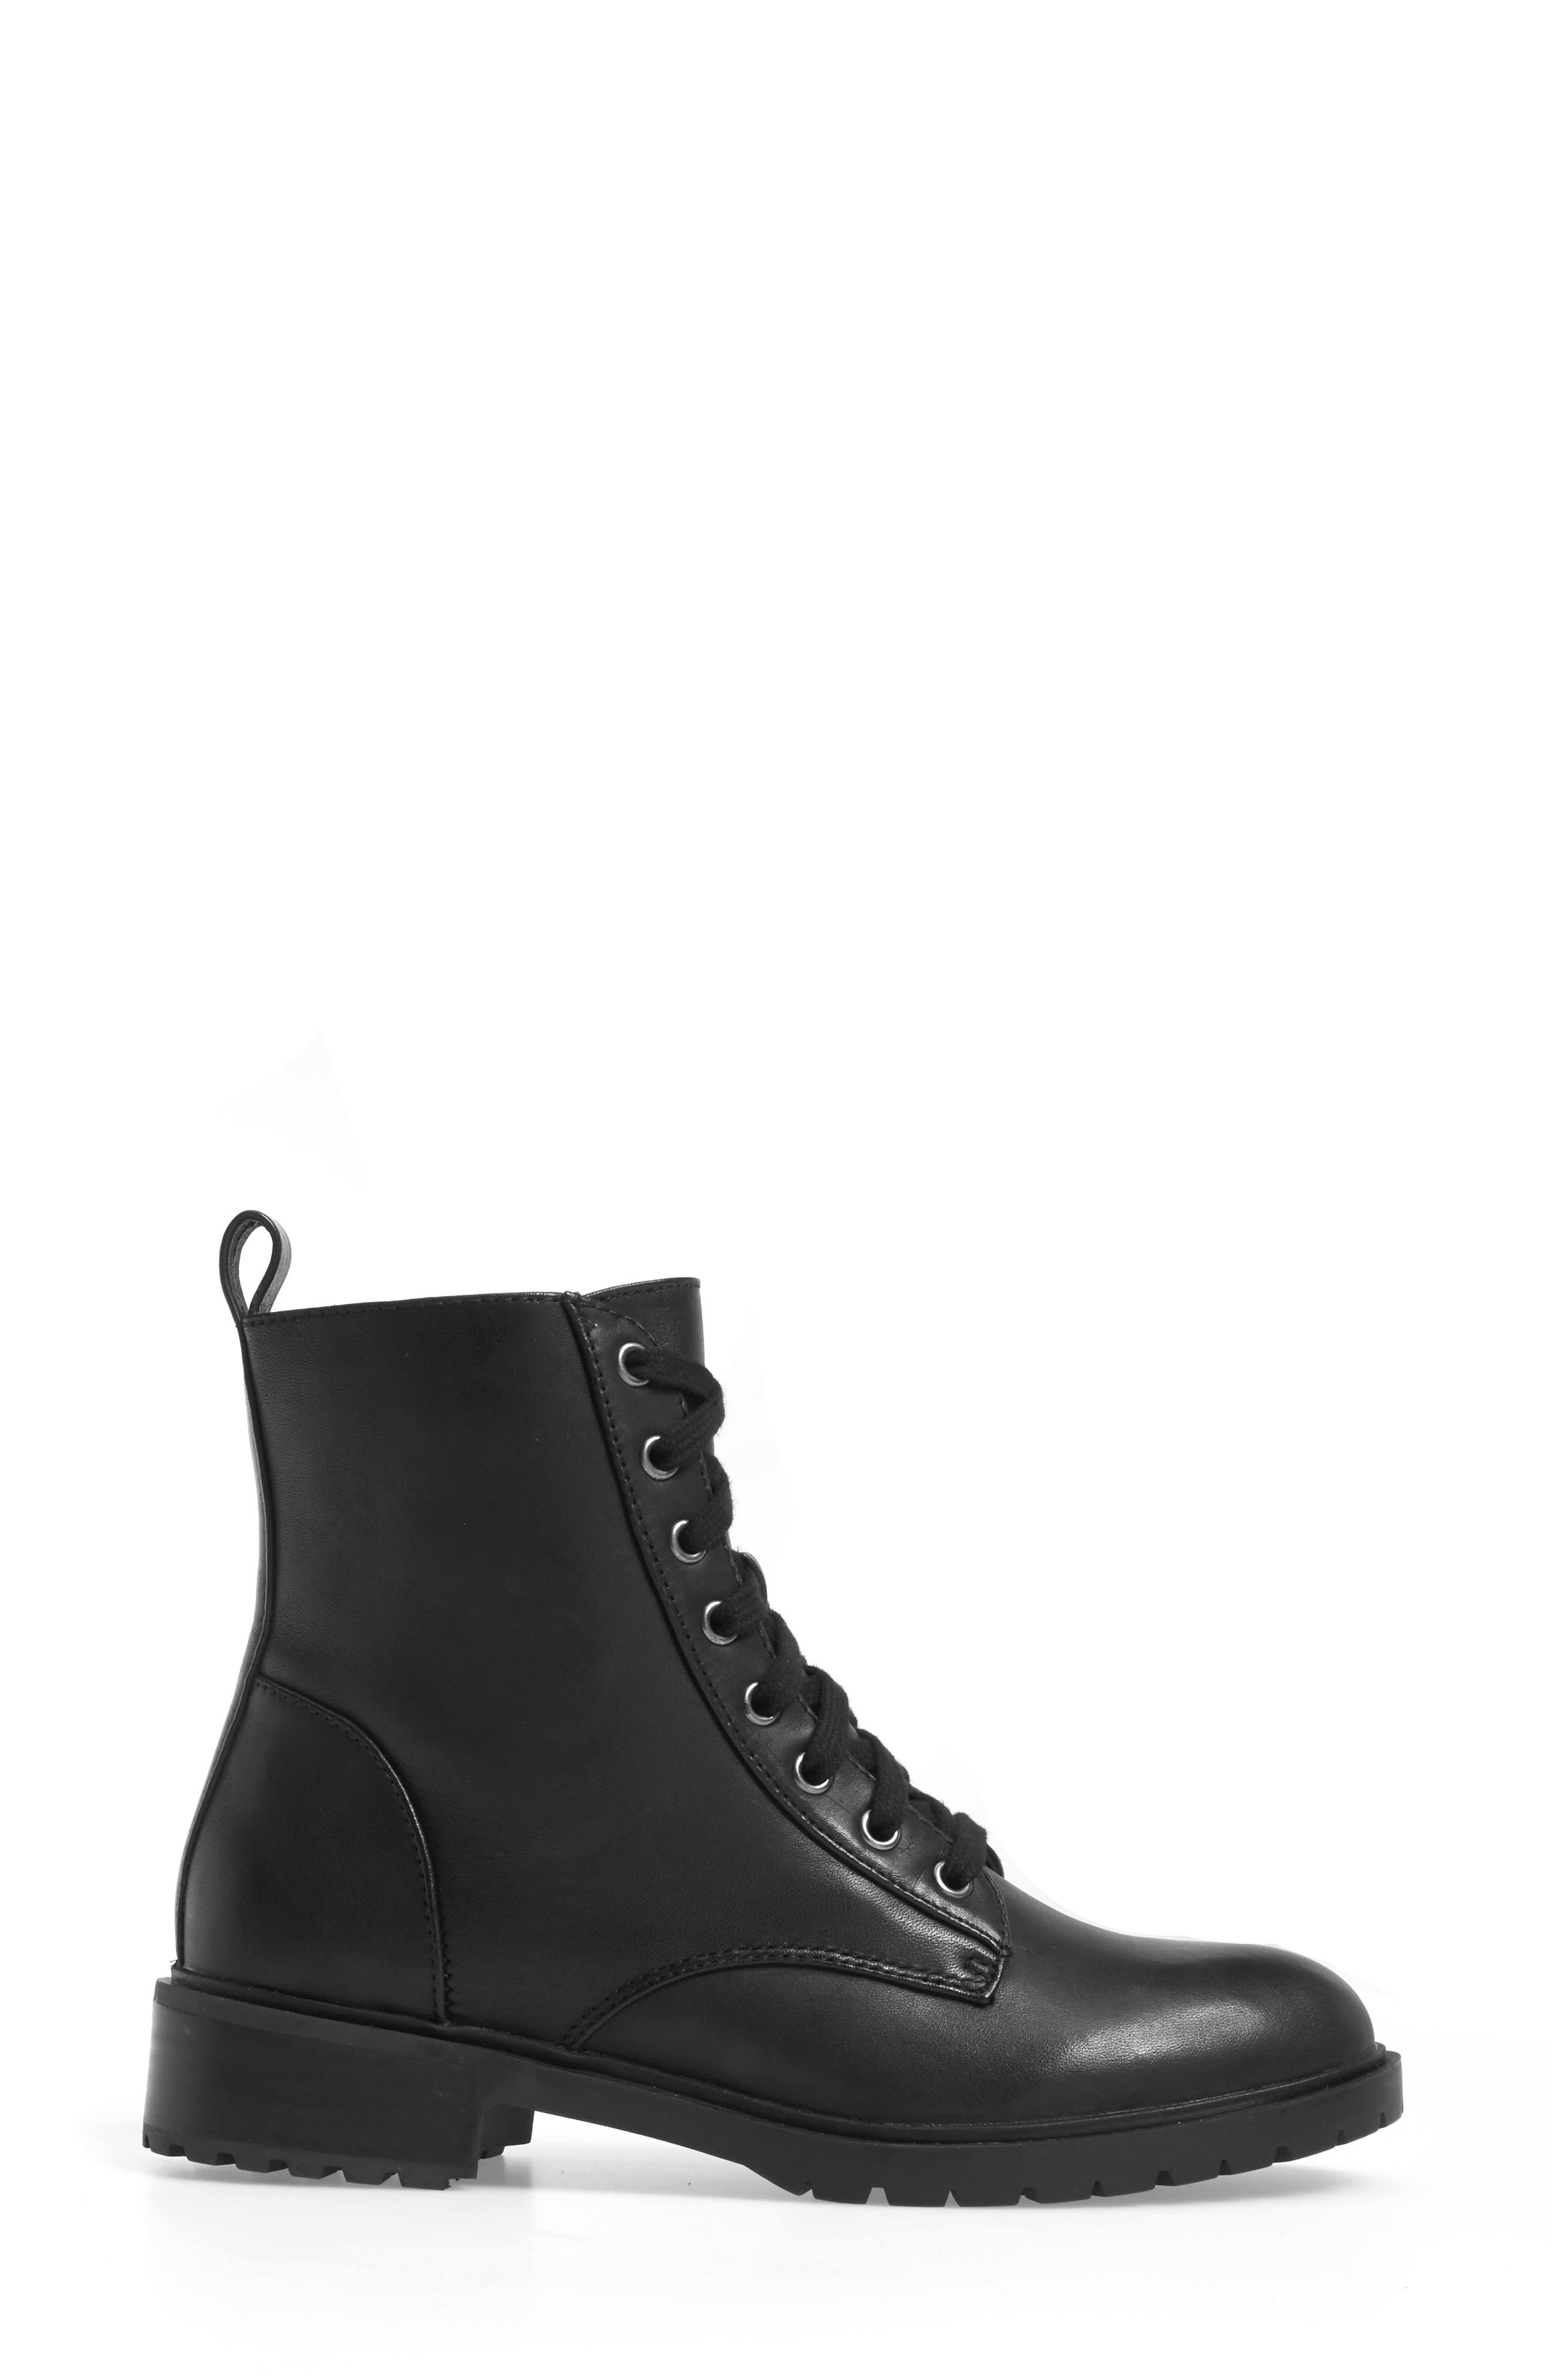 Officer Combat Boot,                             Alternate thumbnail 3, color,                             Black Leather